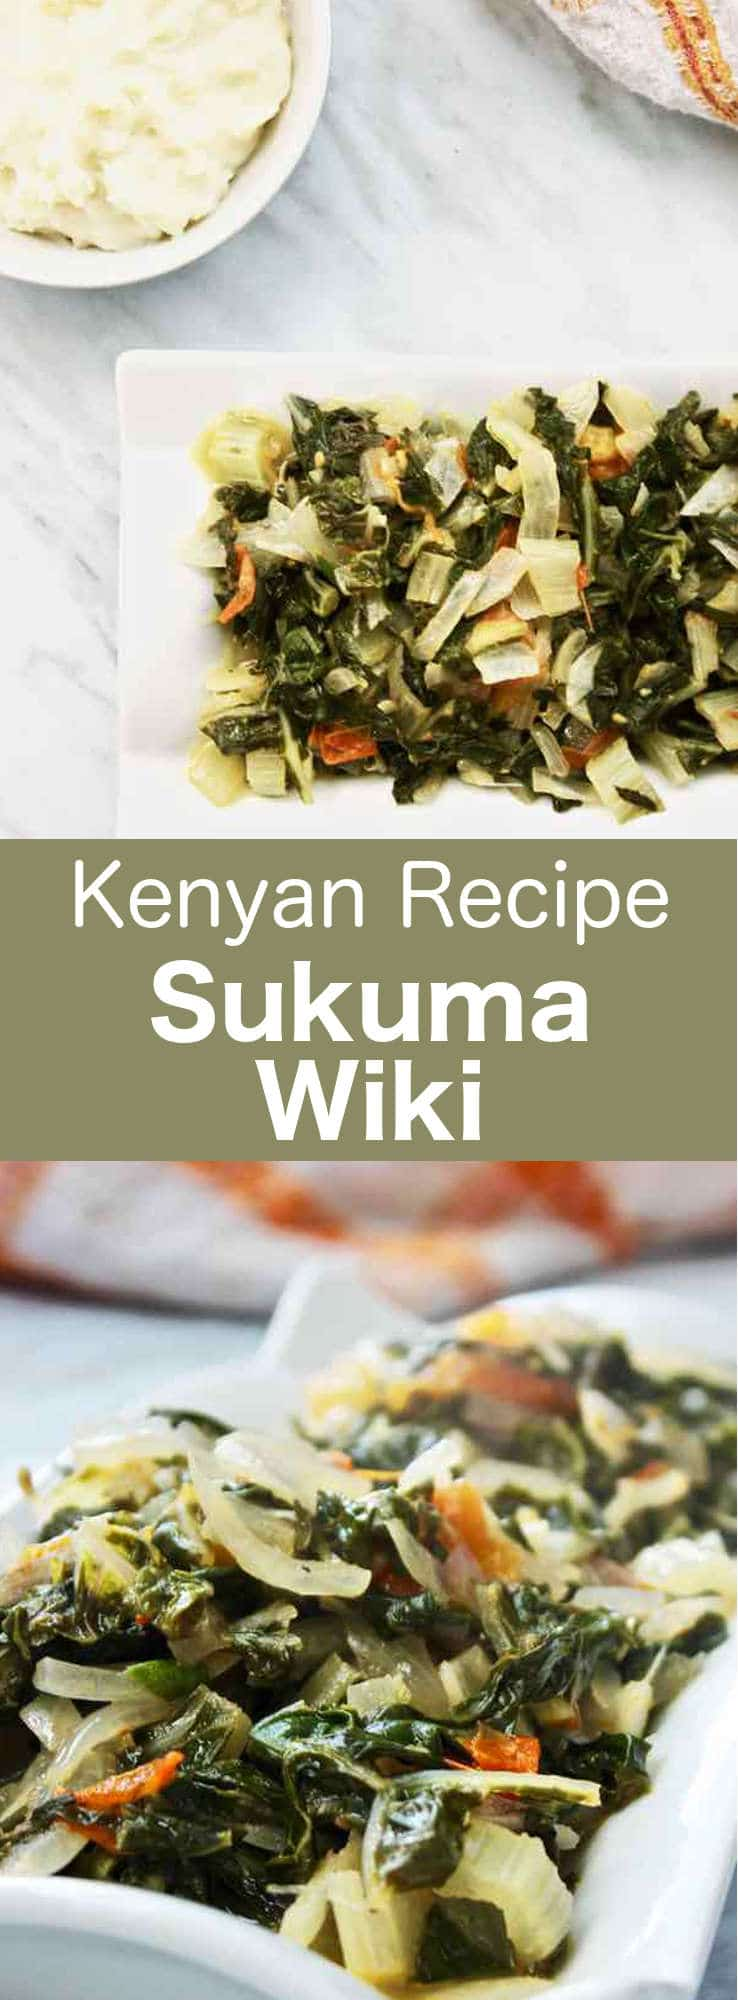 Sukuma wiki is a traditional Kenyan dish that is prepared with collard greens, tomatoes and onions and typically served with ugali. #Kenya #KenyanCuisine #Africa #AfricanCuisine #WorldCuisine #196flavors